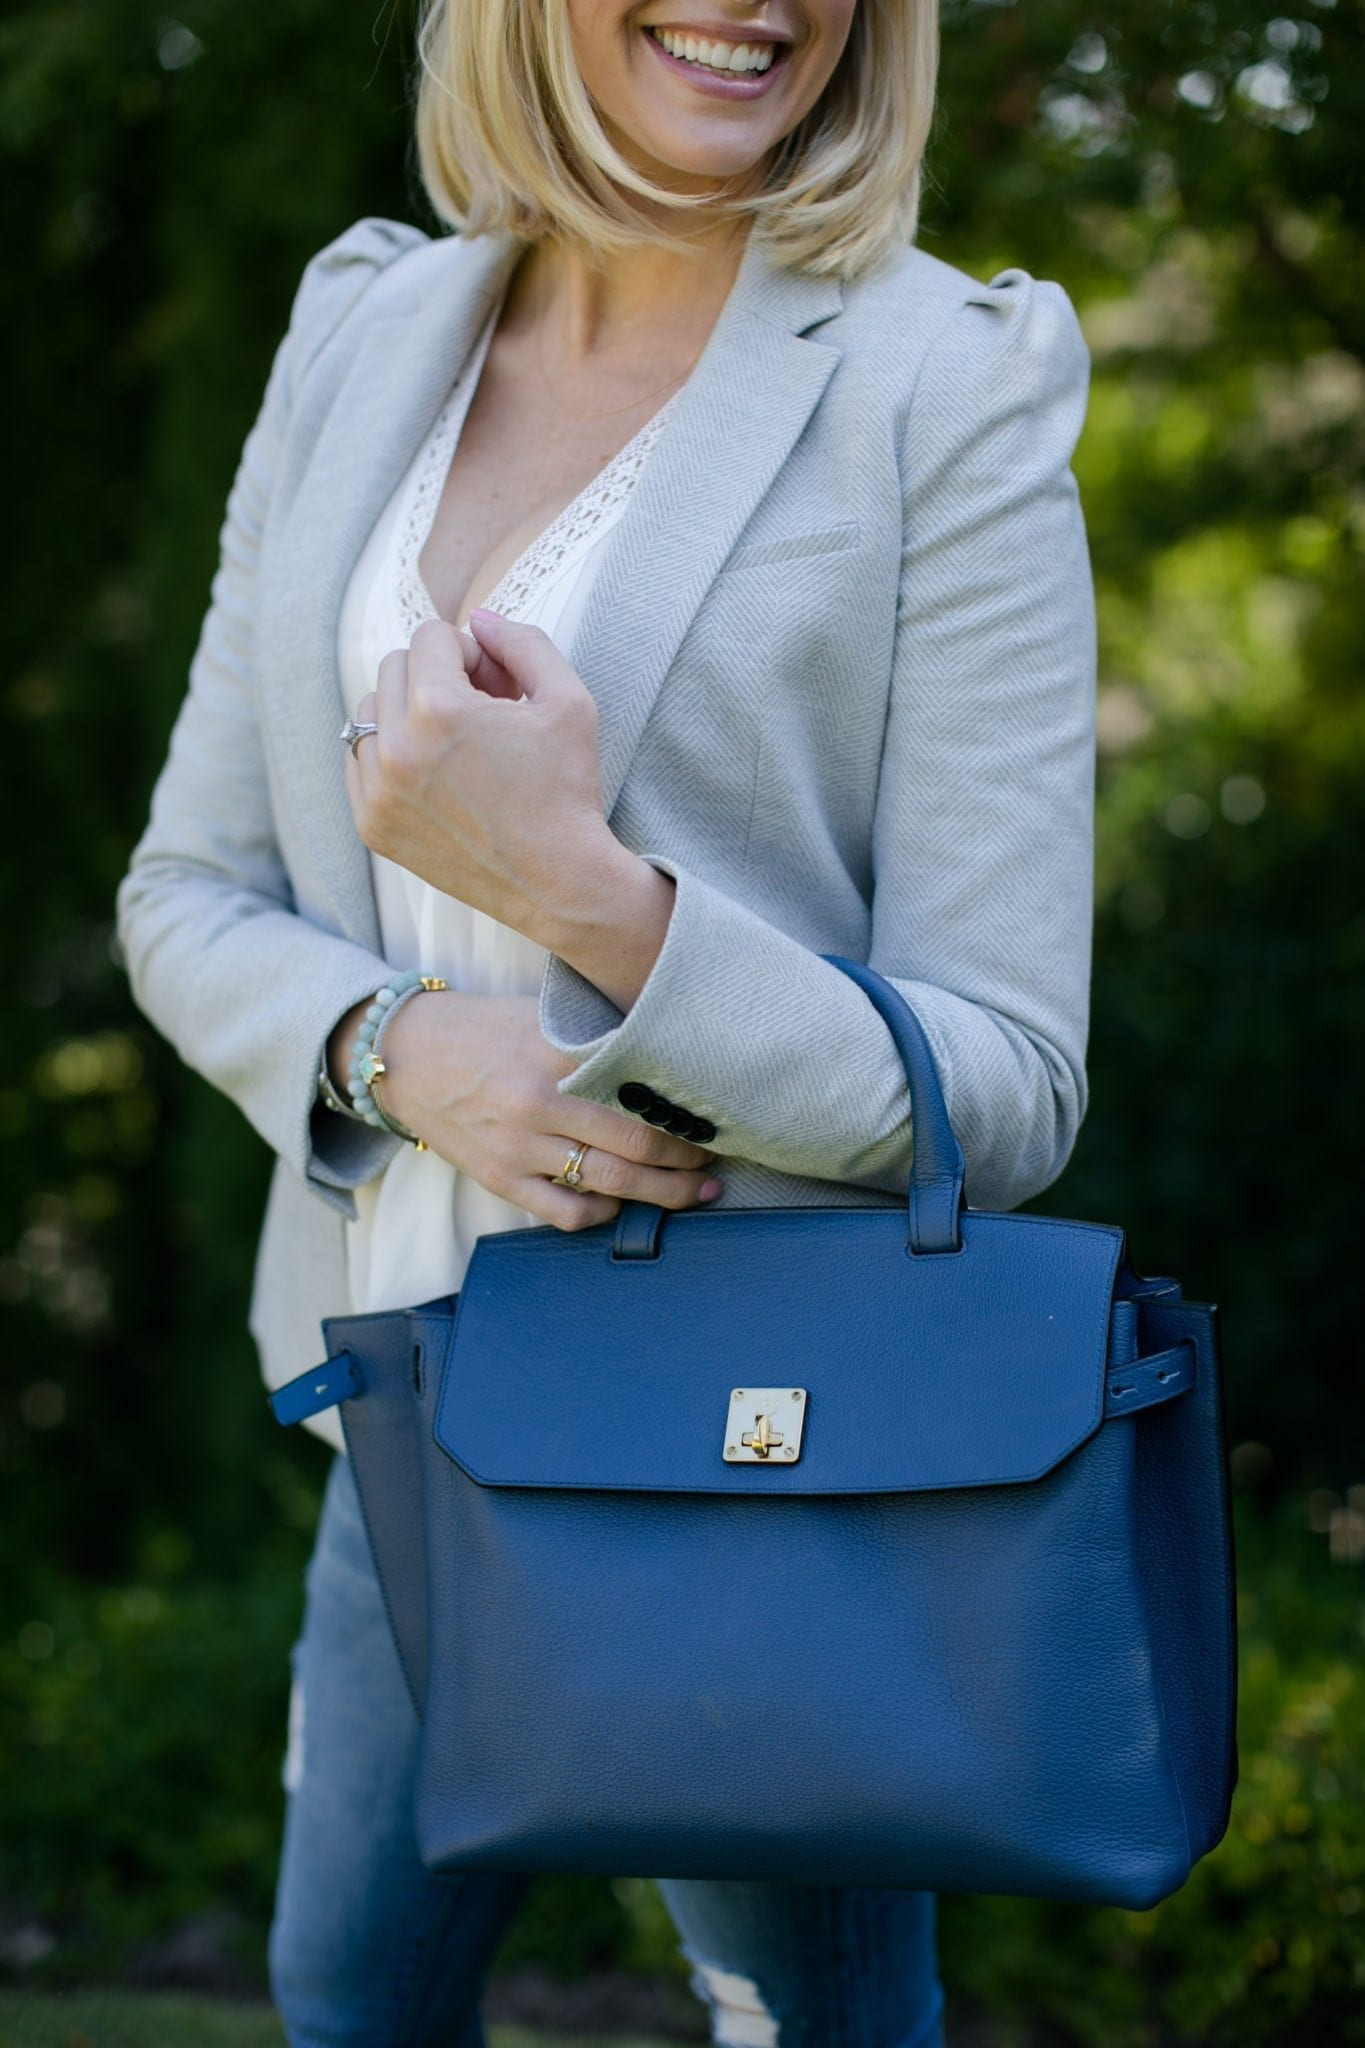 bluegraygal in a light blue veronica beard blazer holding a backpack by MCM in blue with white joie shirt on